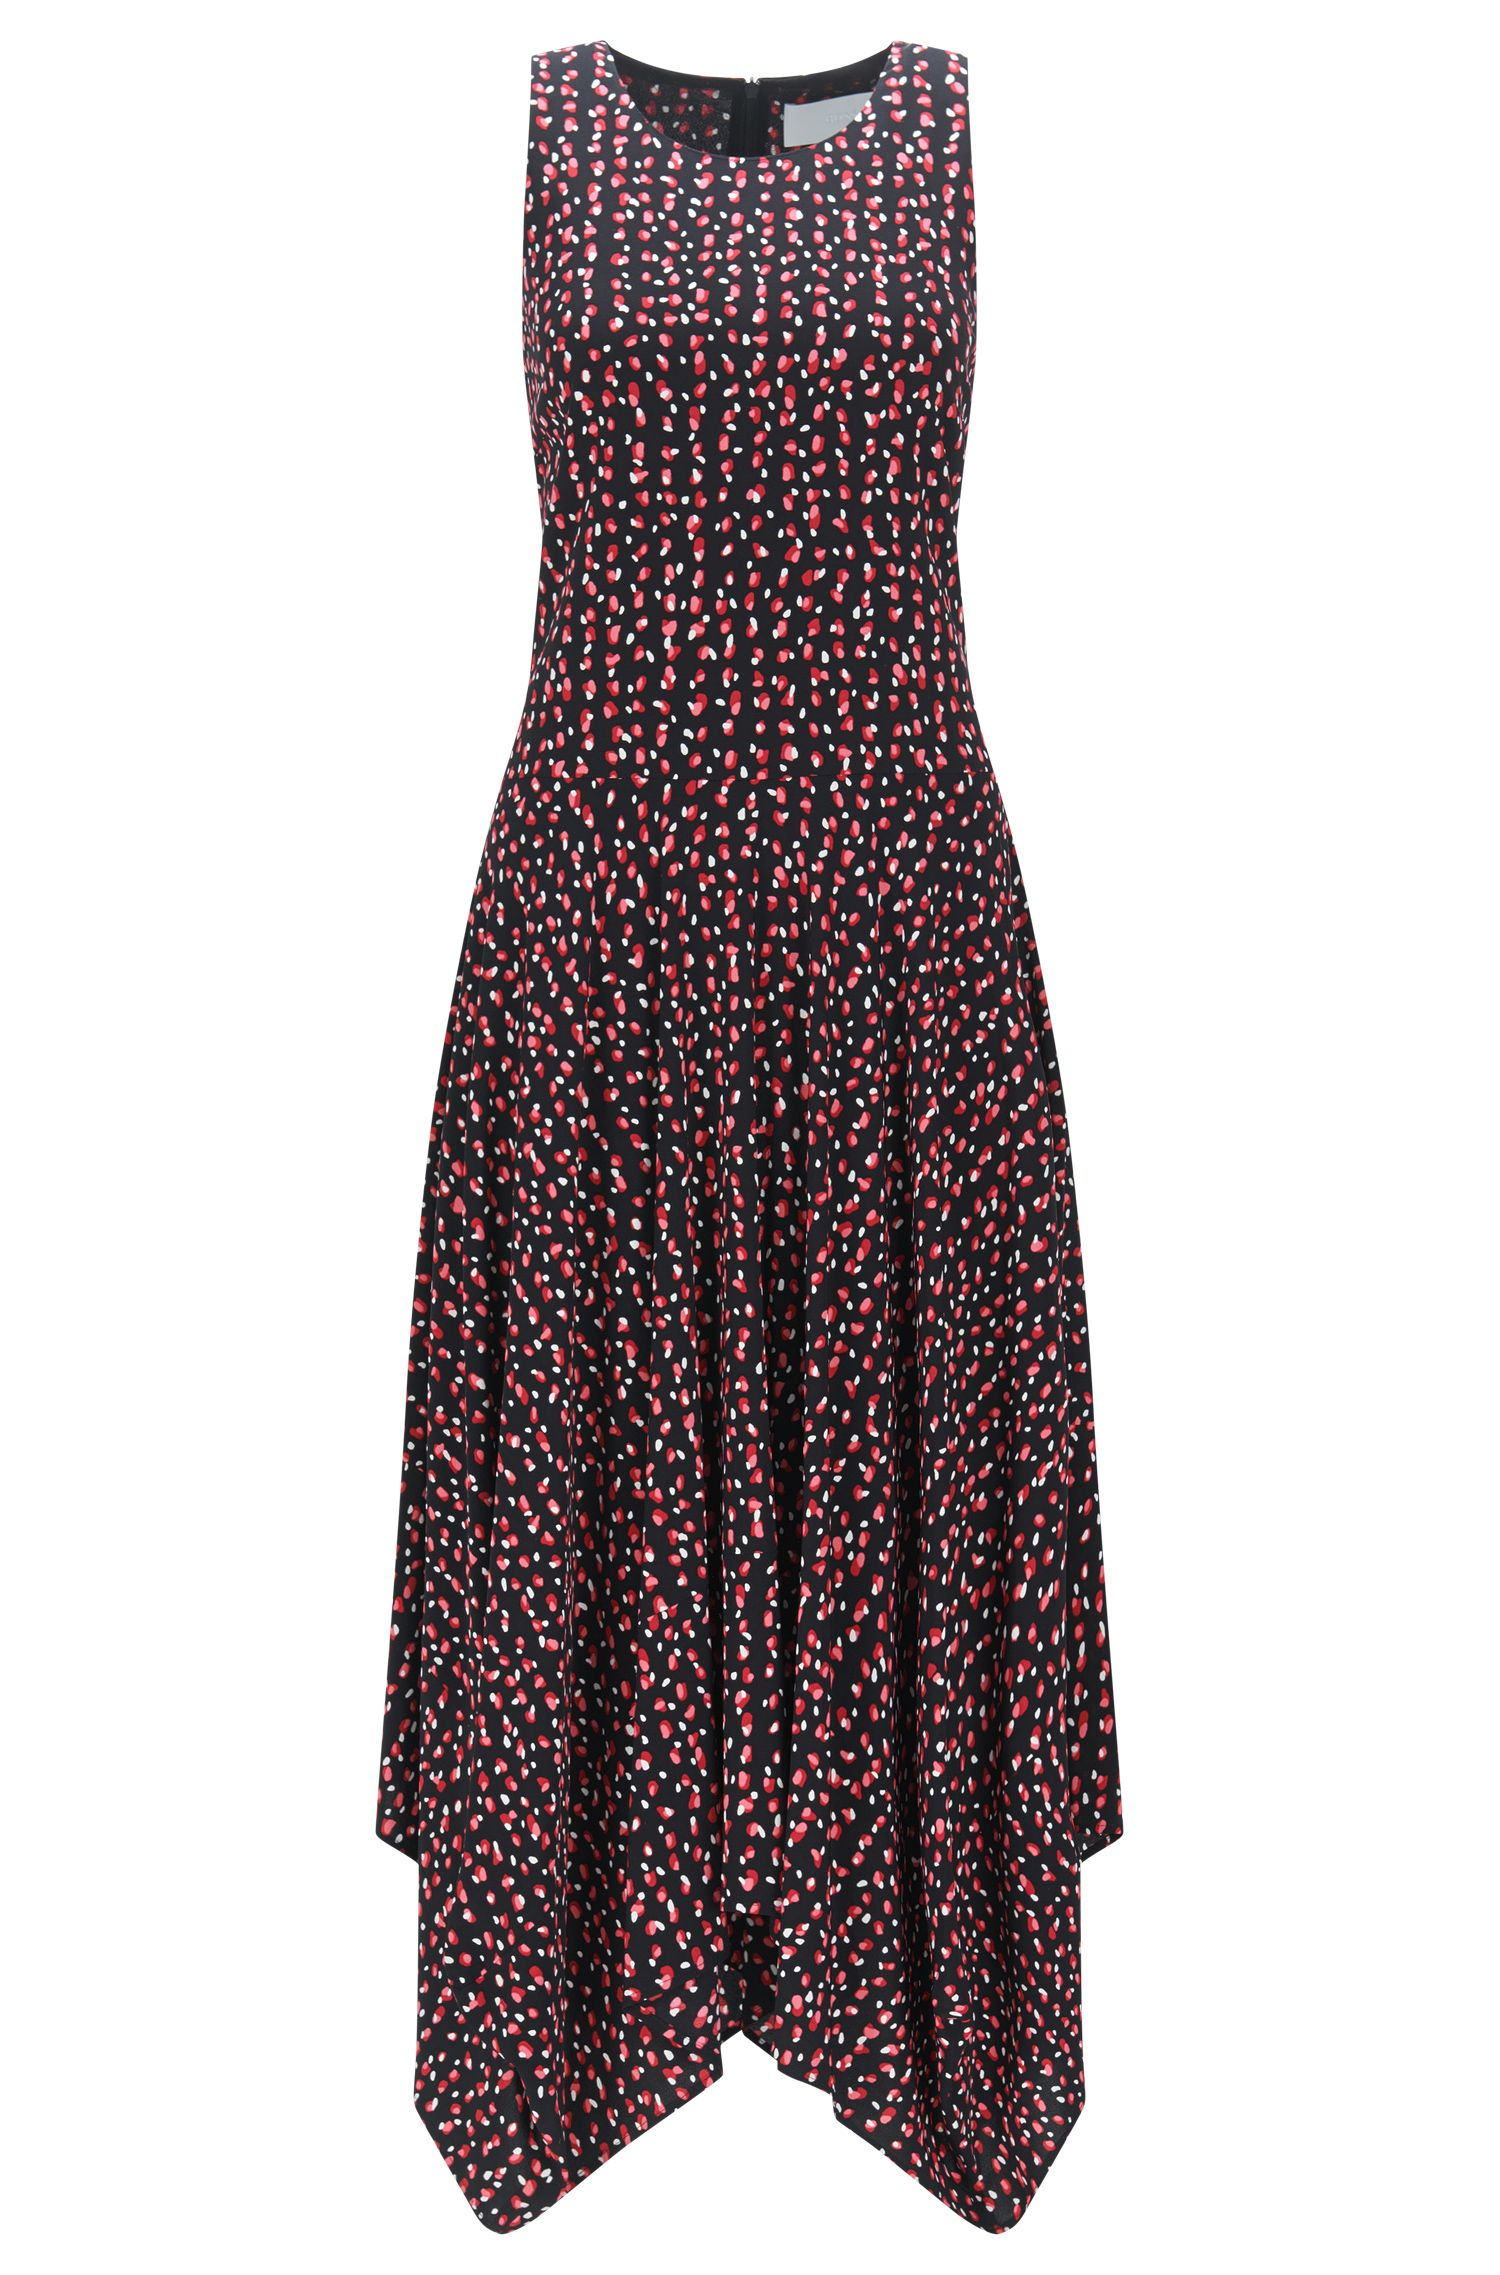 Relaxed-fit printed dress in soft crêpe